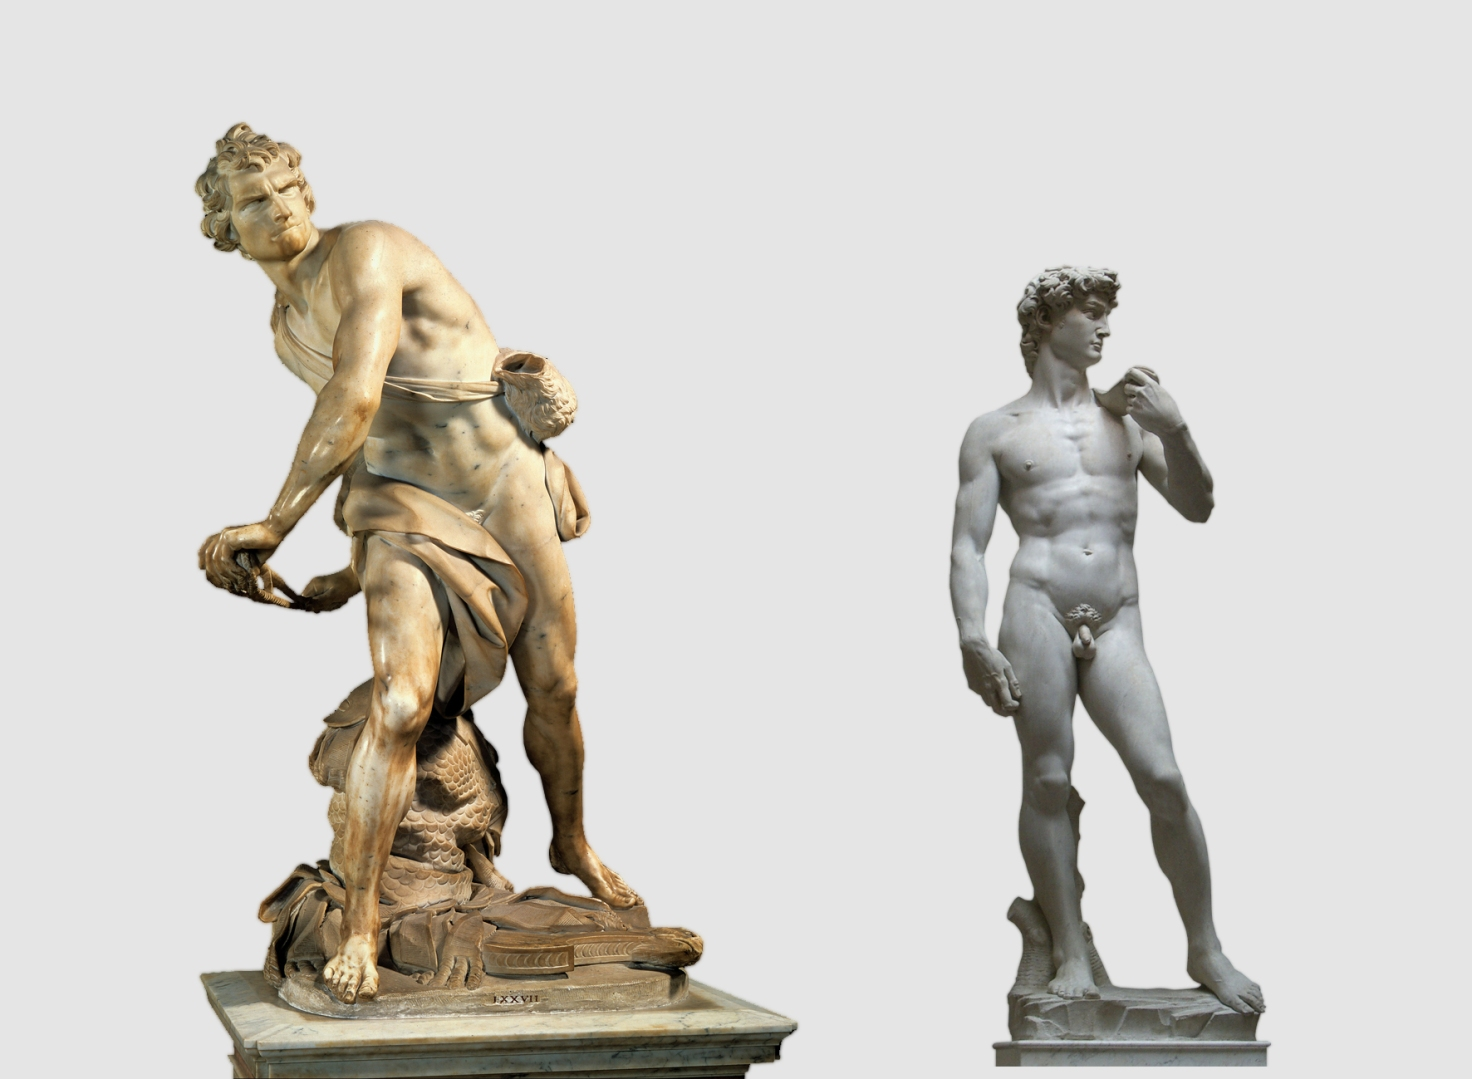 an analysis and a comparison of michelangelos david and berninis david Published: mon, 07 may 2018 the biblical character of david has been the inspiration for many works of art throughout history the young david, as goliath's adversary, has been sculpted by such artists as verrocchio, donatello, michelangelo, and bernini.